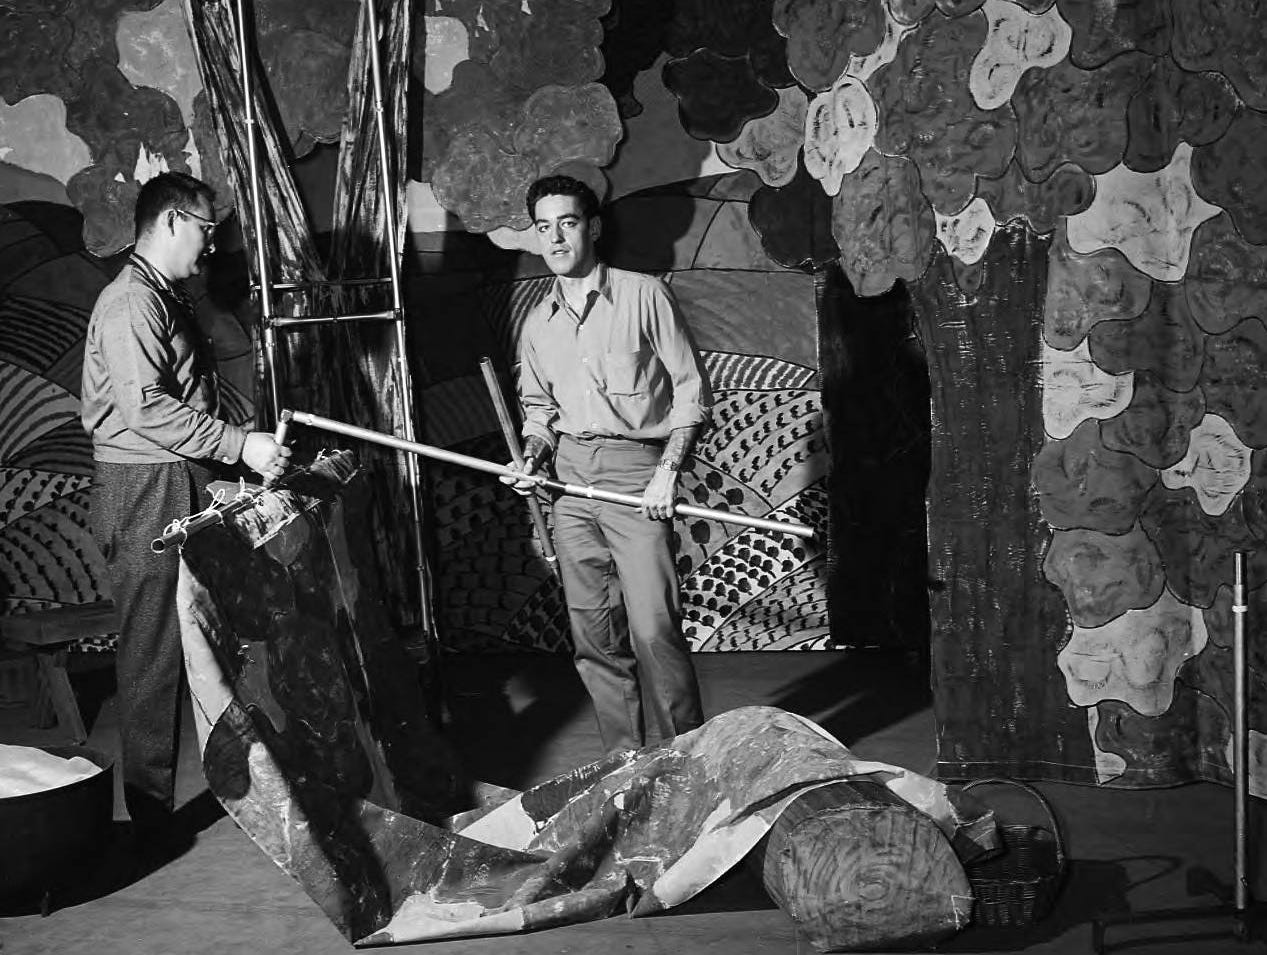 "Cast members of Southwest Missouri State College's play """"Finian's Rainbow."" Byrne Blackwood and Nelson Park adjusted portable scenery designed to fit in 30-inch foot lockers. Published in the News & Leader on March 5, 1961."